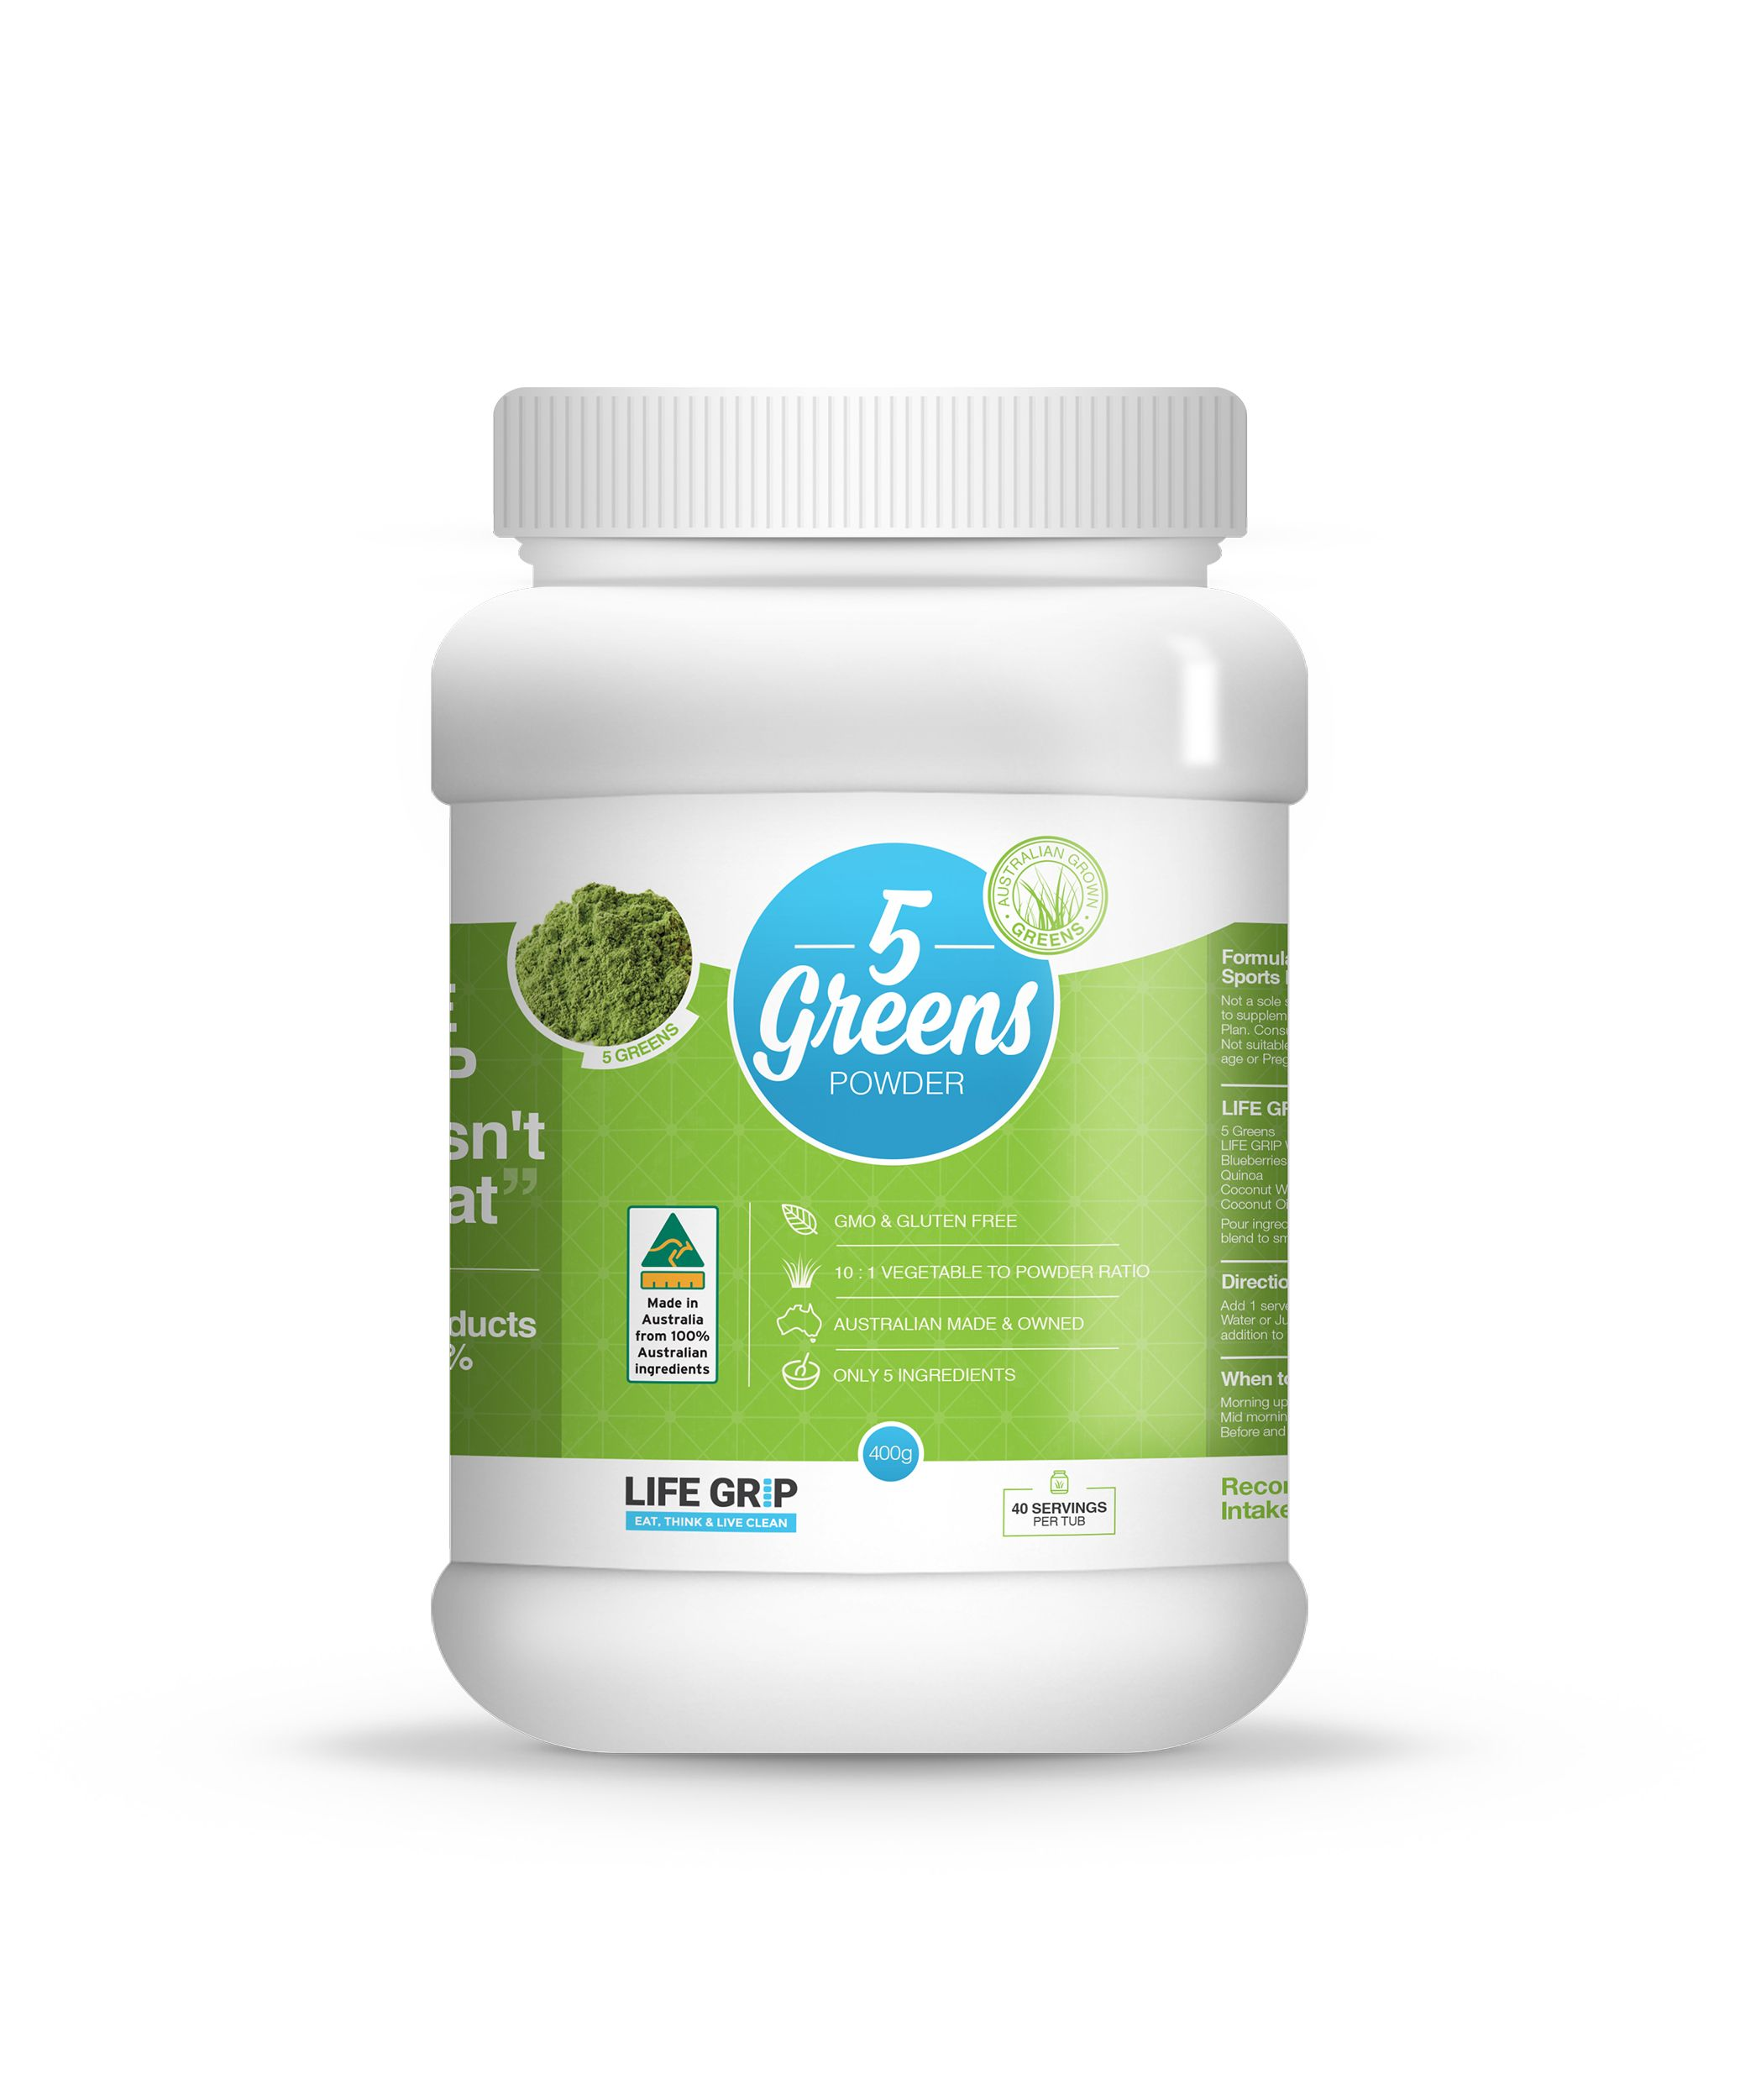 Pin by LIFE GRIP on Supplements Detox your body, Green